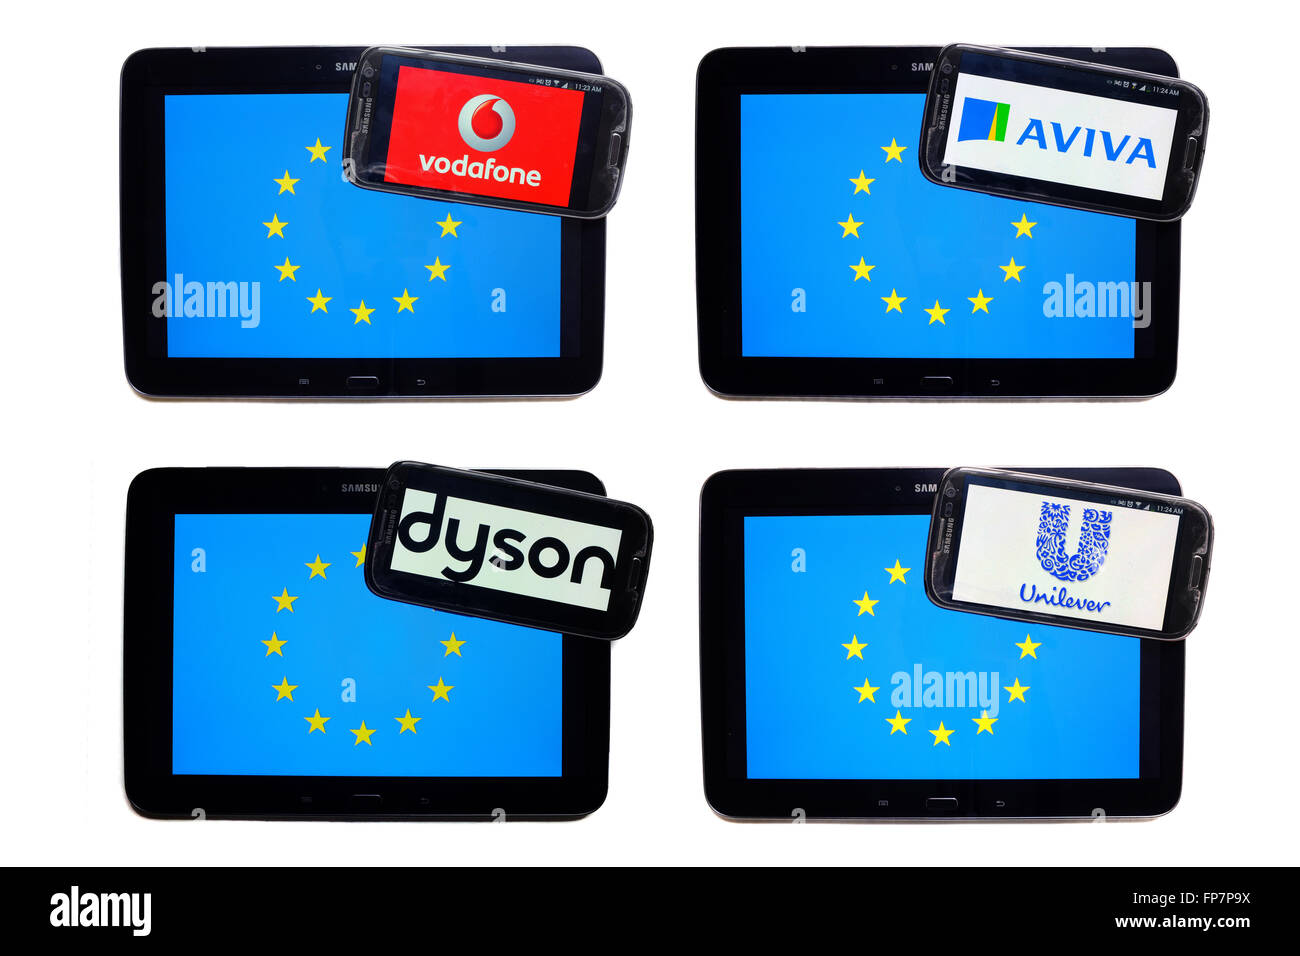 The logos of British companies on the screens of smartphones displayed on top of the EU flag. - Stock Image